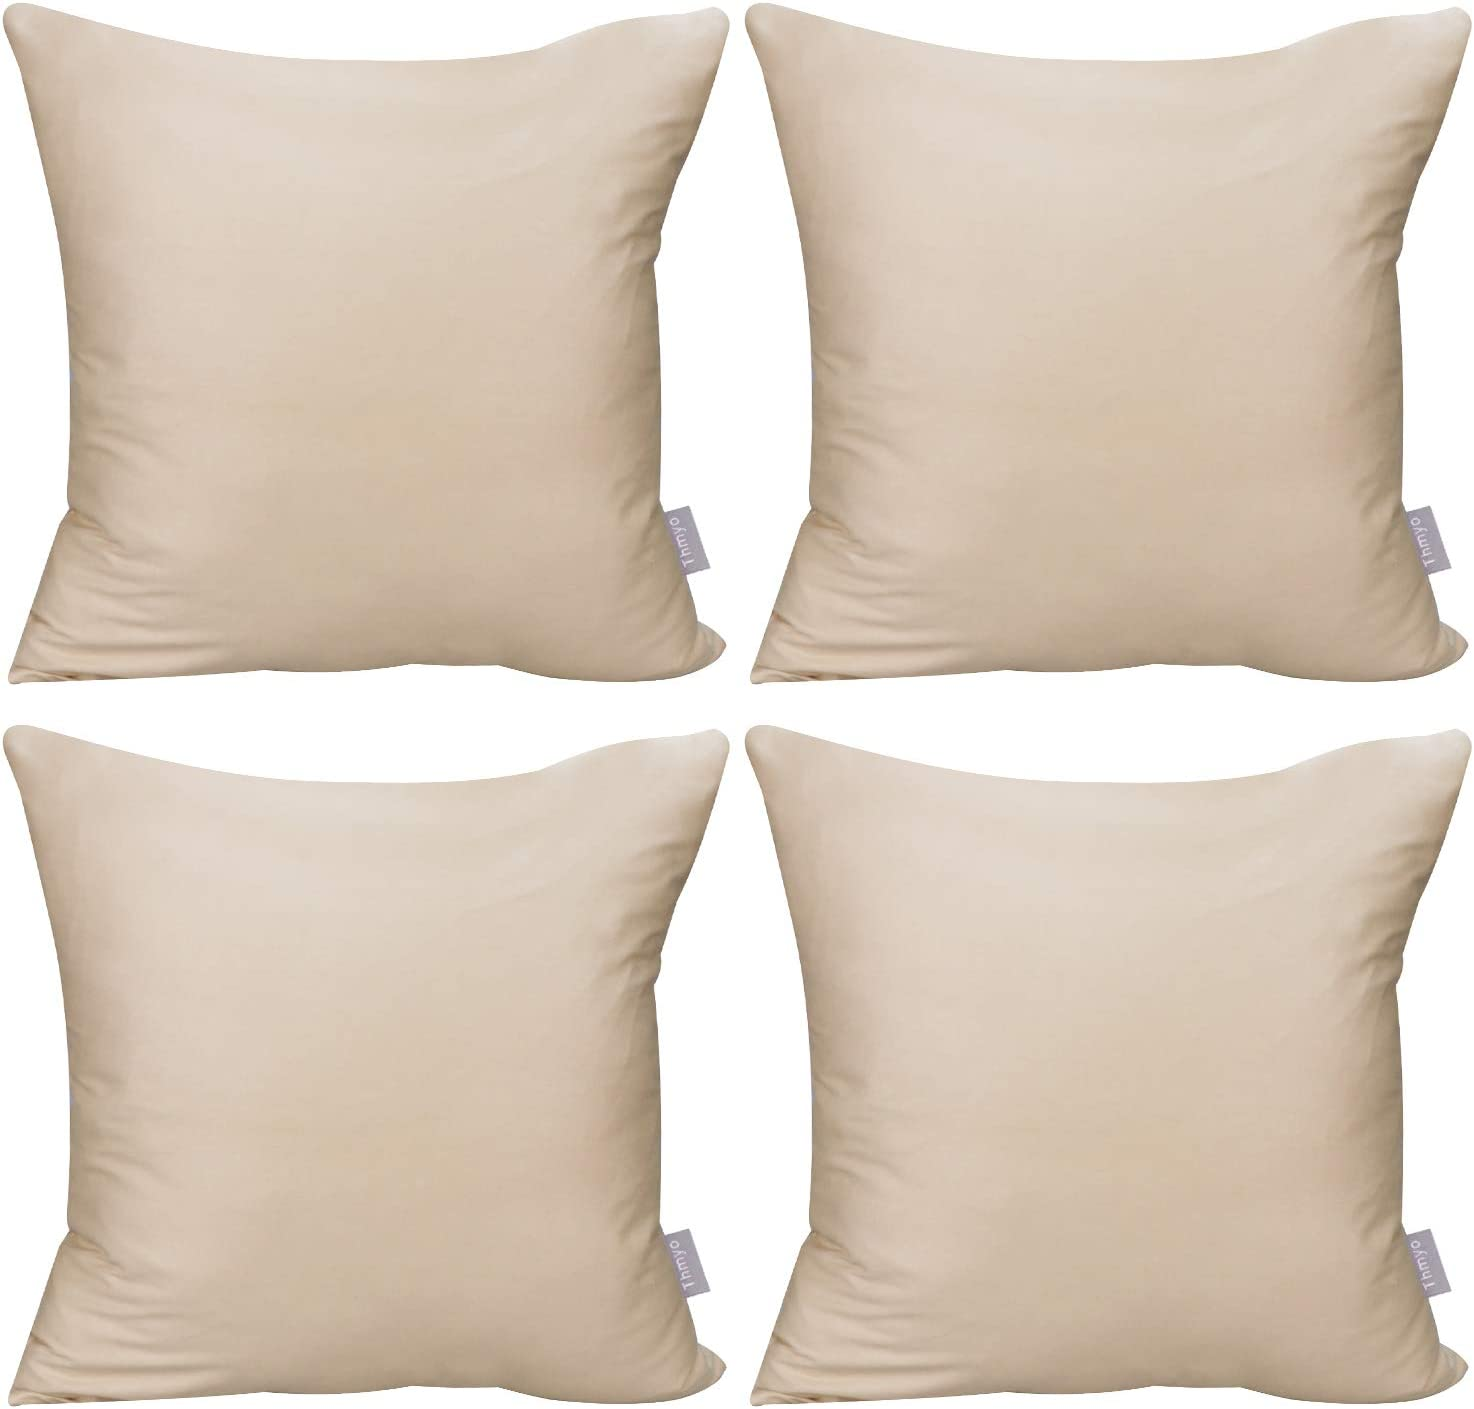 4-Pack 100% Cotton Comfortable Solid Decorative Throw Pillow Case Square Cushion Cover Pillowcase (Cover Only,No Insert)(18x18 inch/ 45x45cm,Khaki): Home & Kitchen